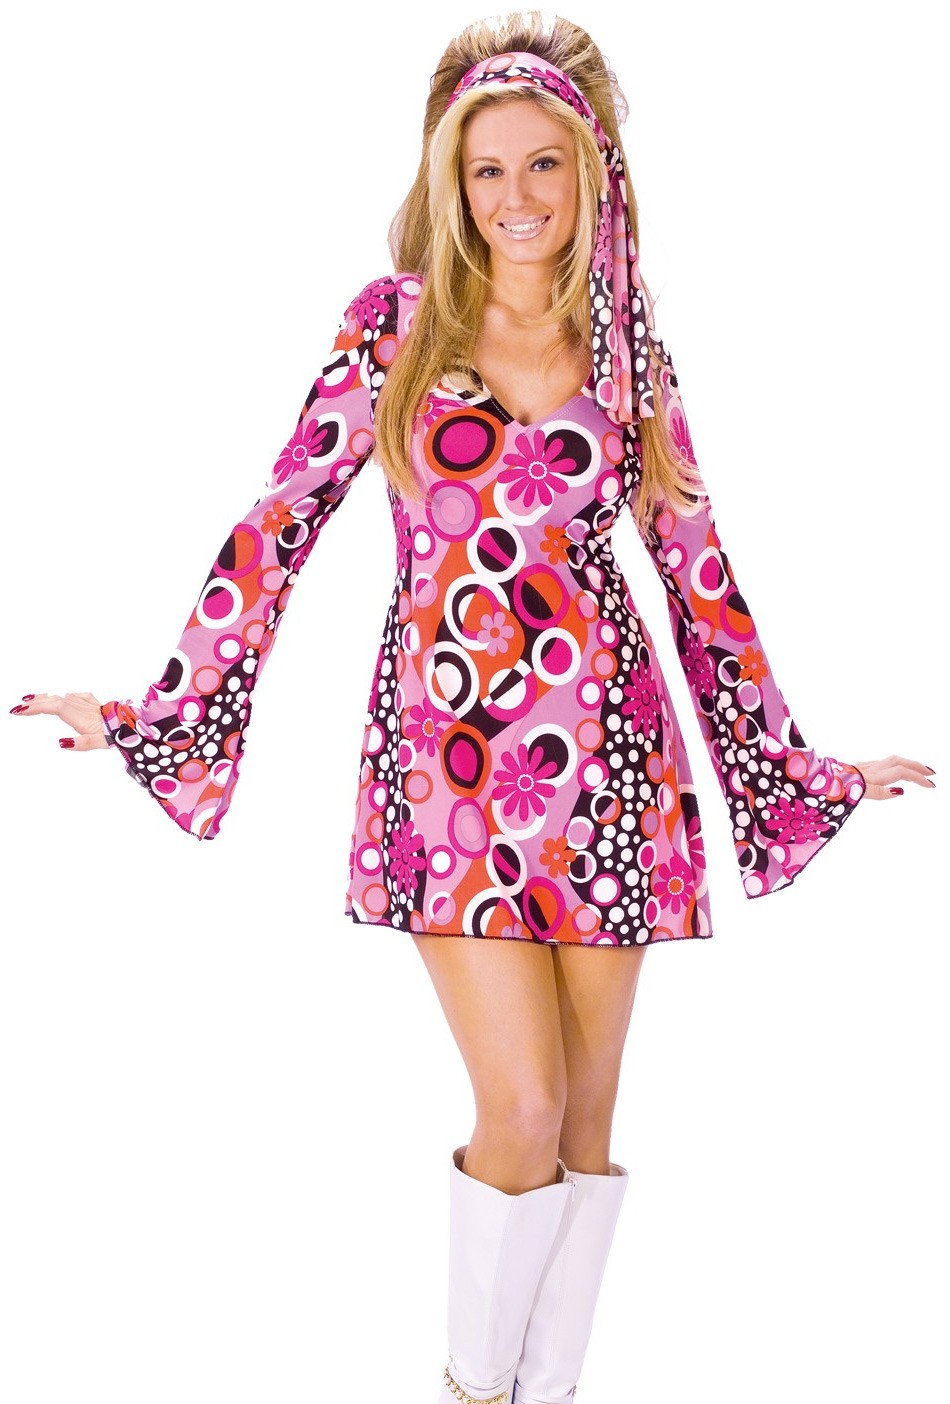 Christmas gown ideas 70s halloween - Feelin Groovy 1960s 1970s Adult Women S Costume